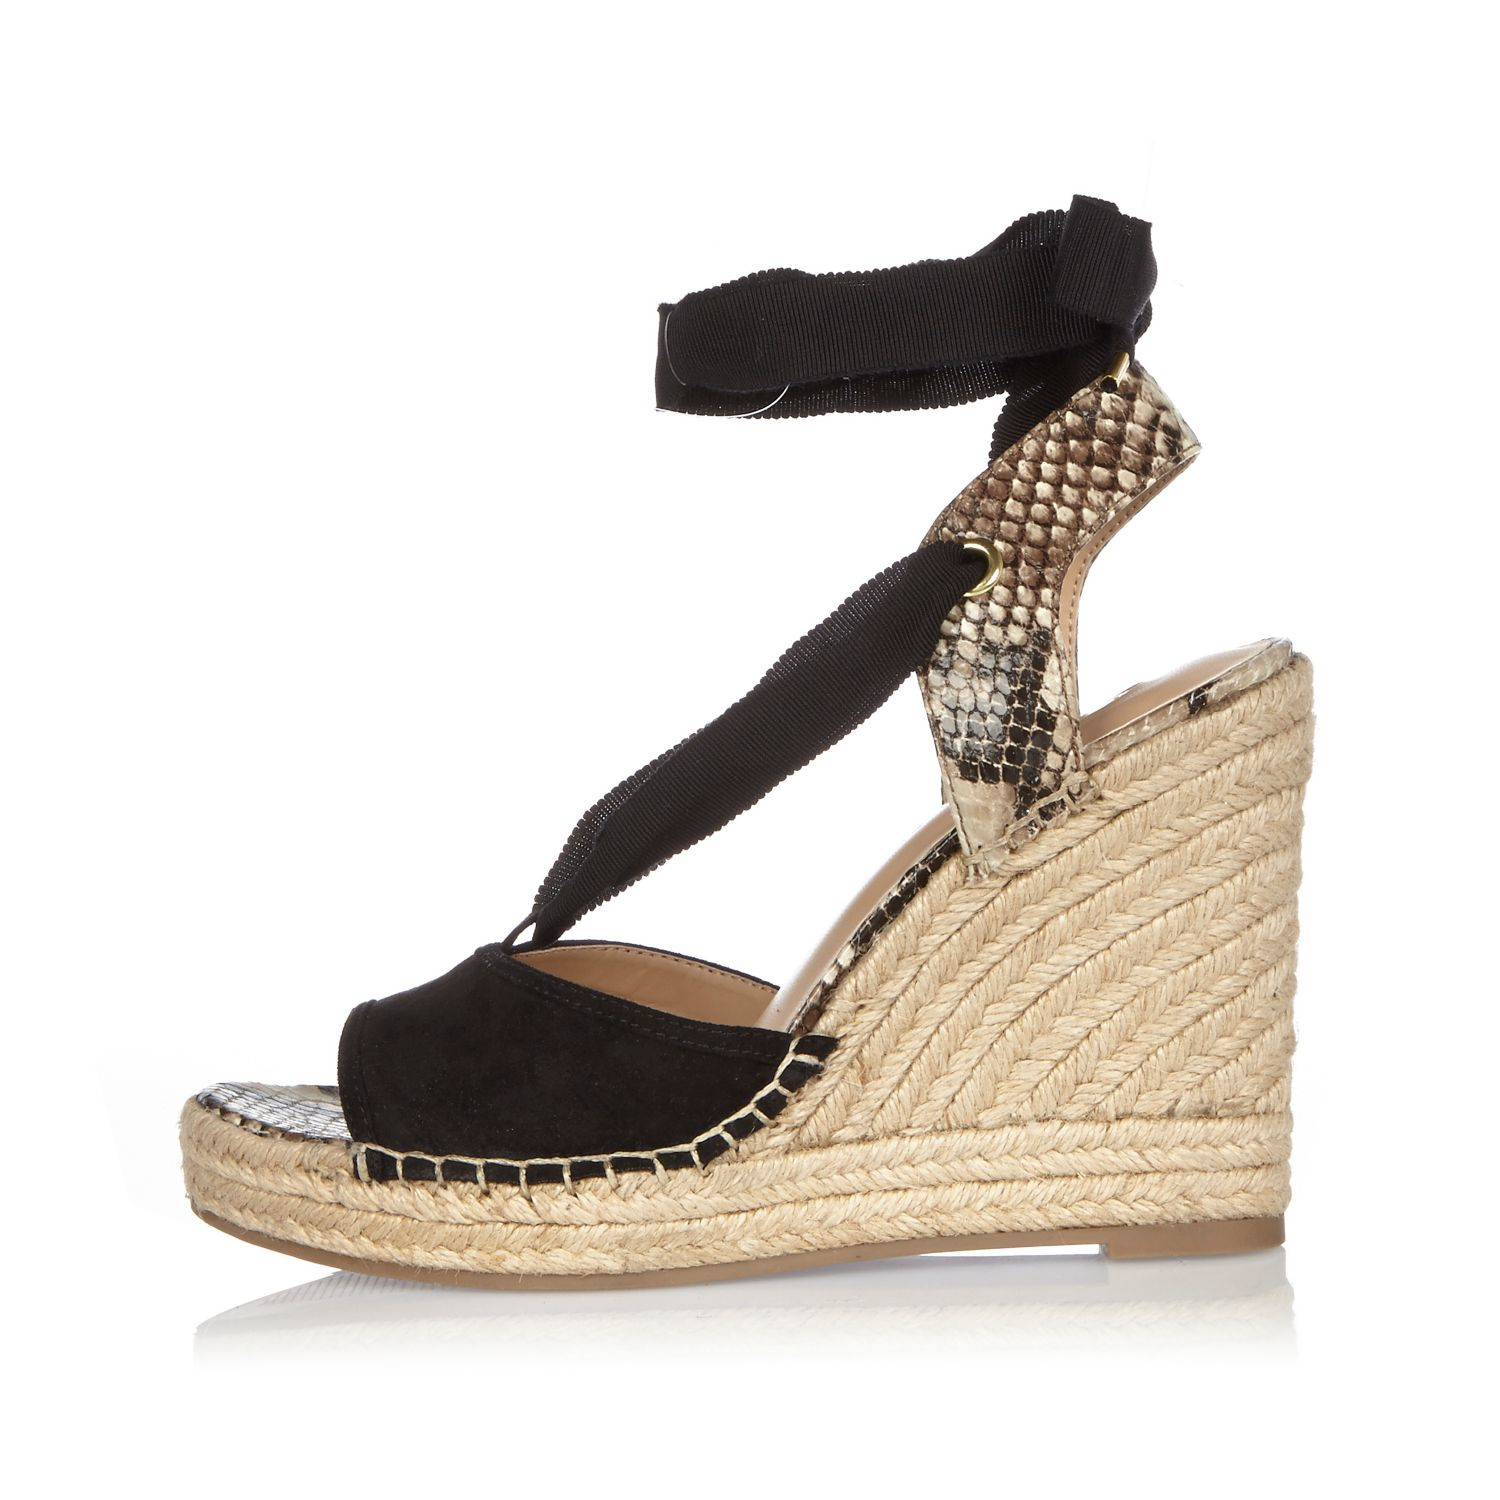 11d058aff6495 Lyst - River Island Black Suede Lace-up Wedge Sandals in Black